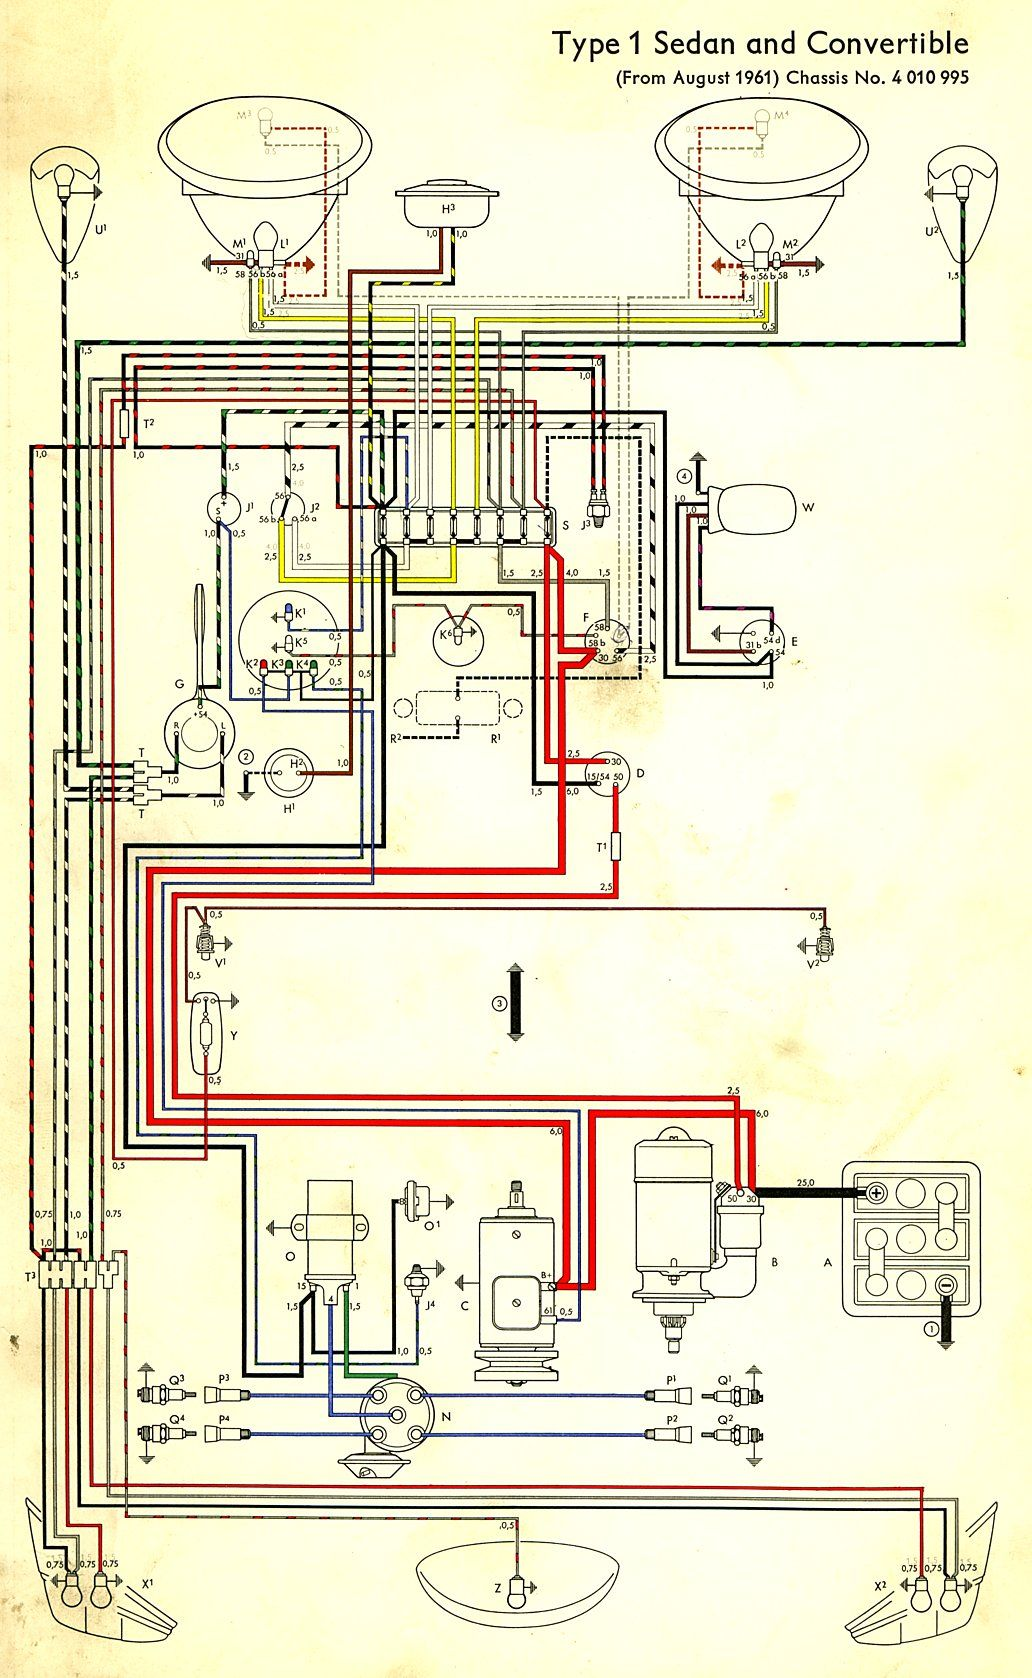 vw beetle generator wiring diagram thesamba gallery 1973 vw beetle generator wiring diagram #1